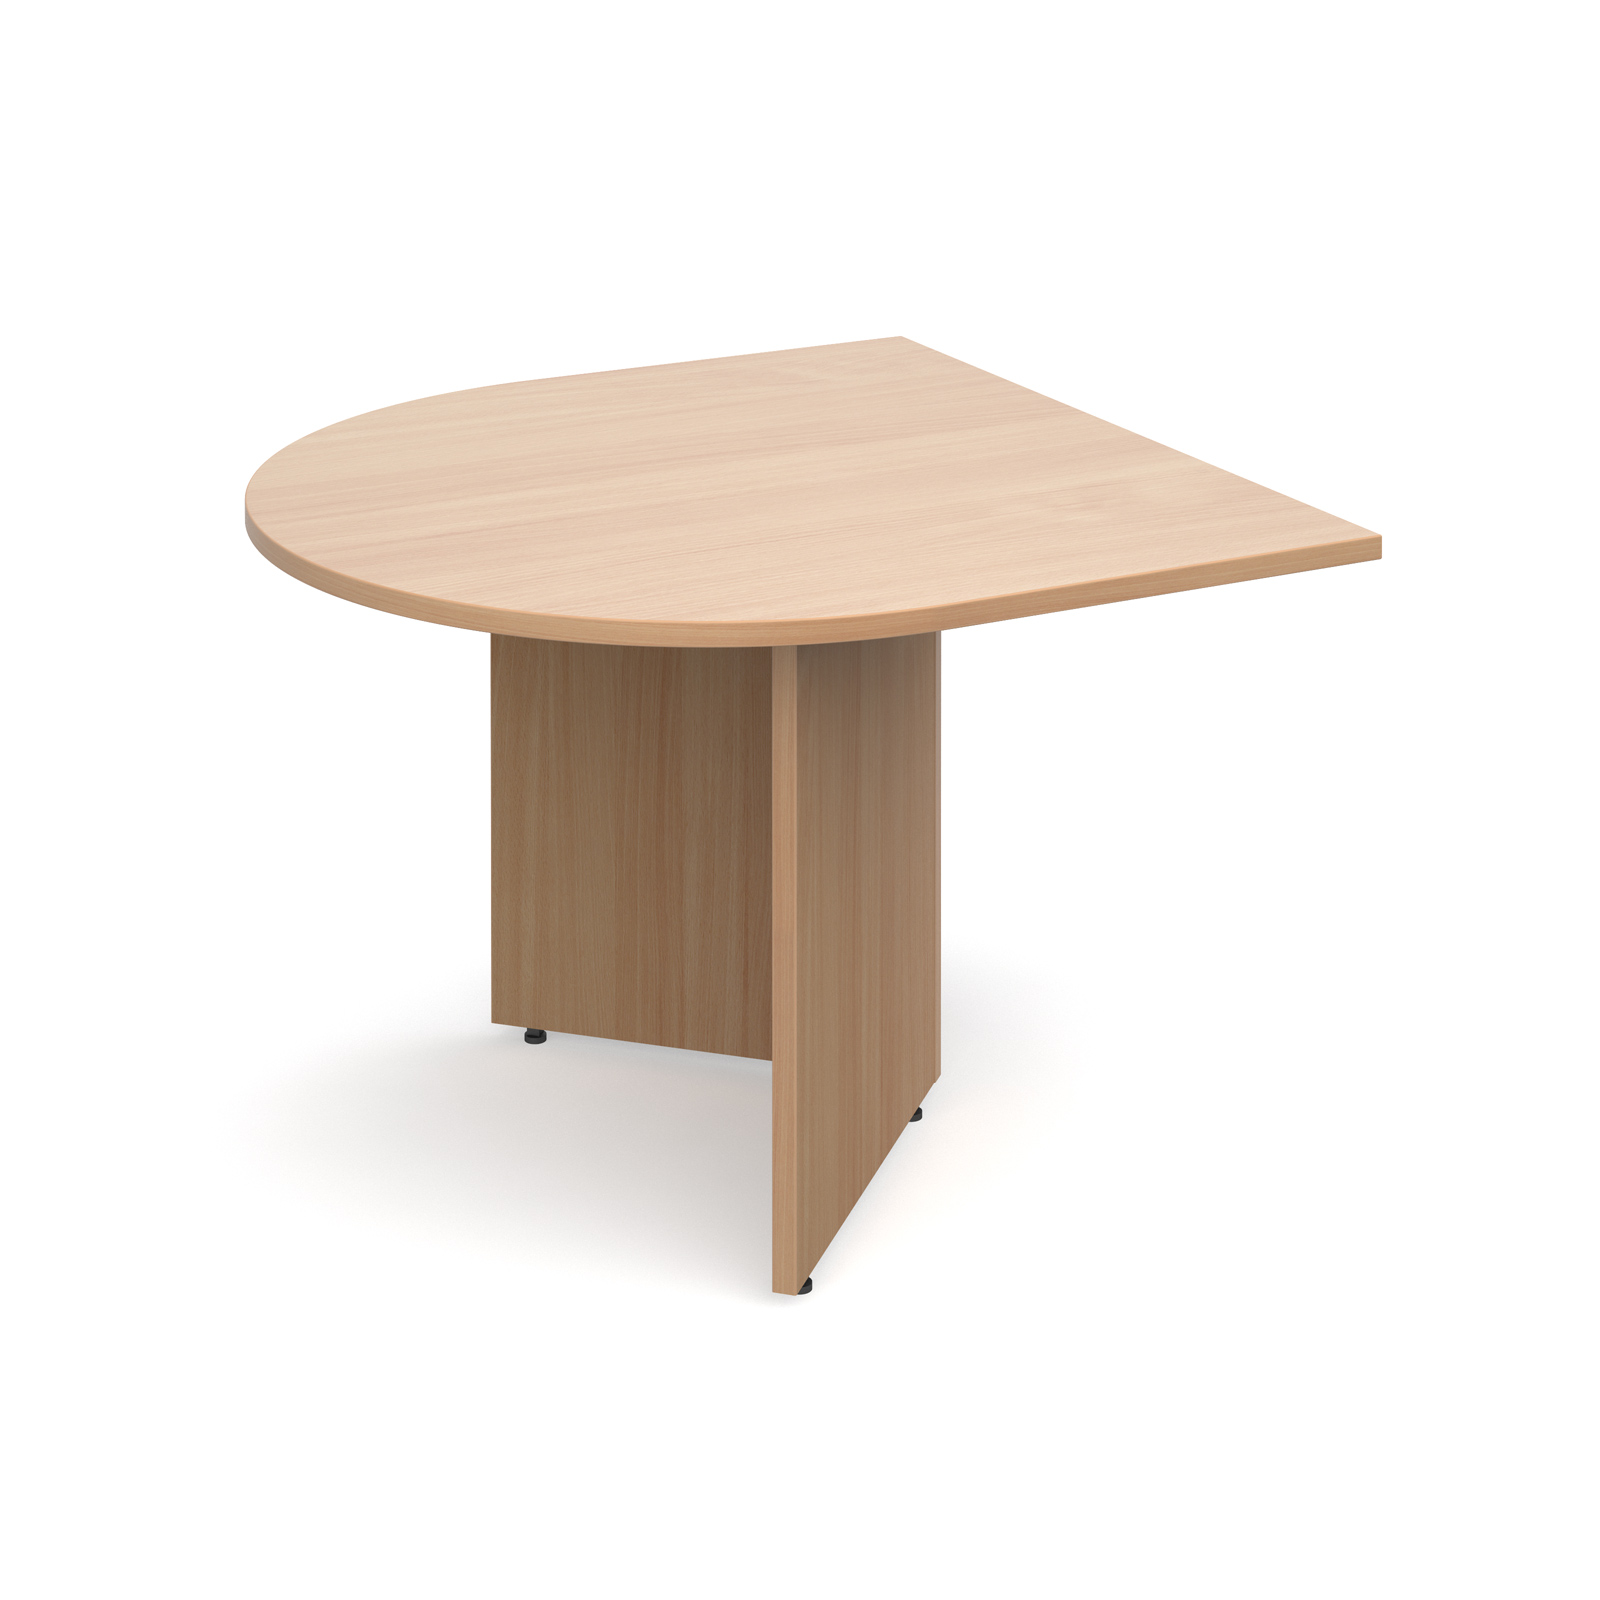 Boardroom / Meeting Arrow head leg radial extension table